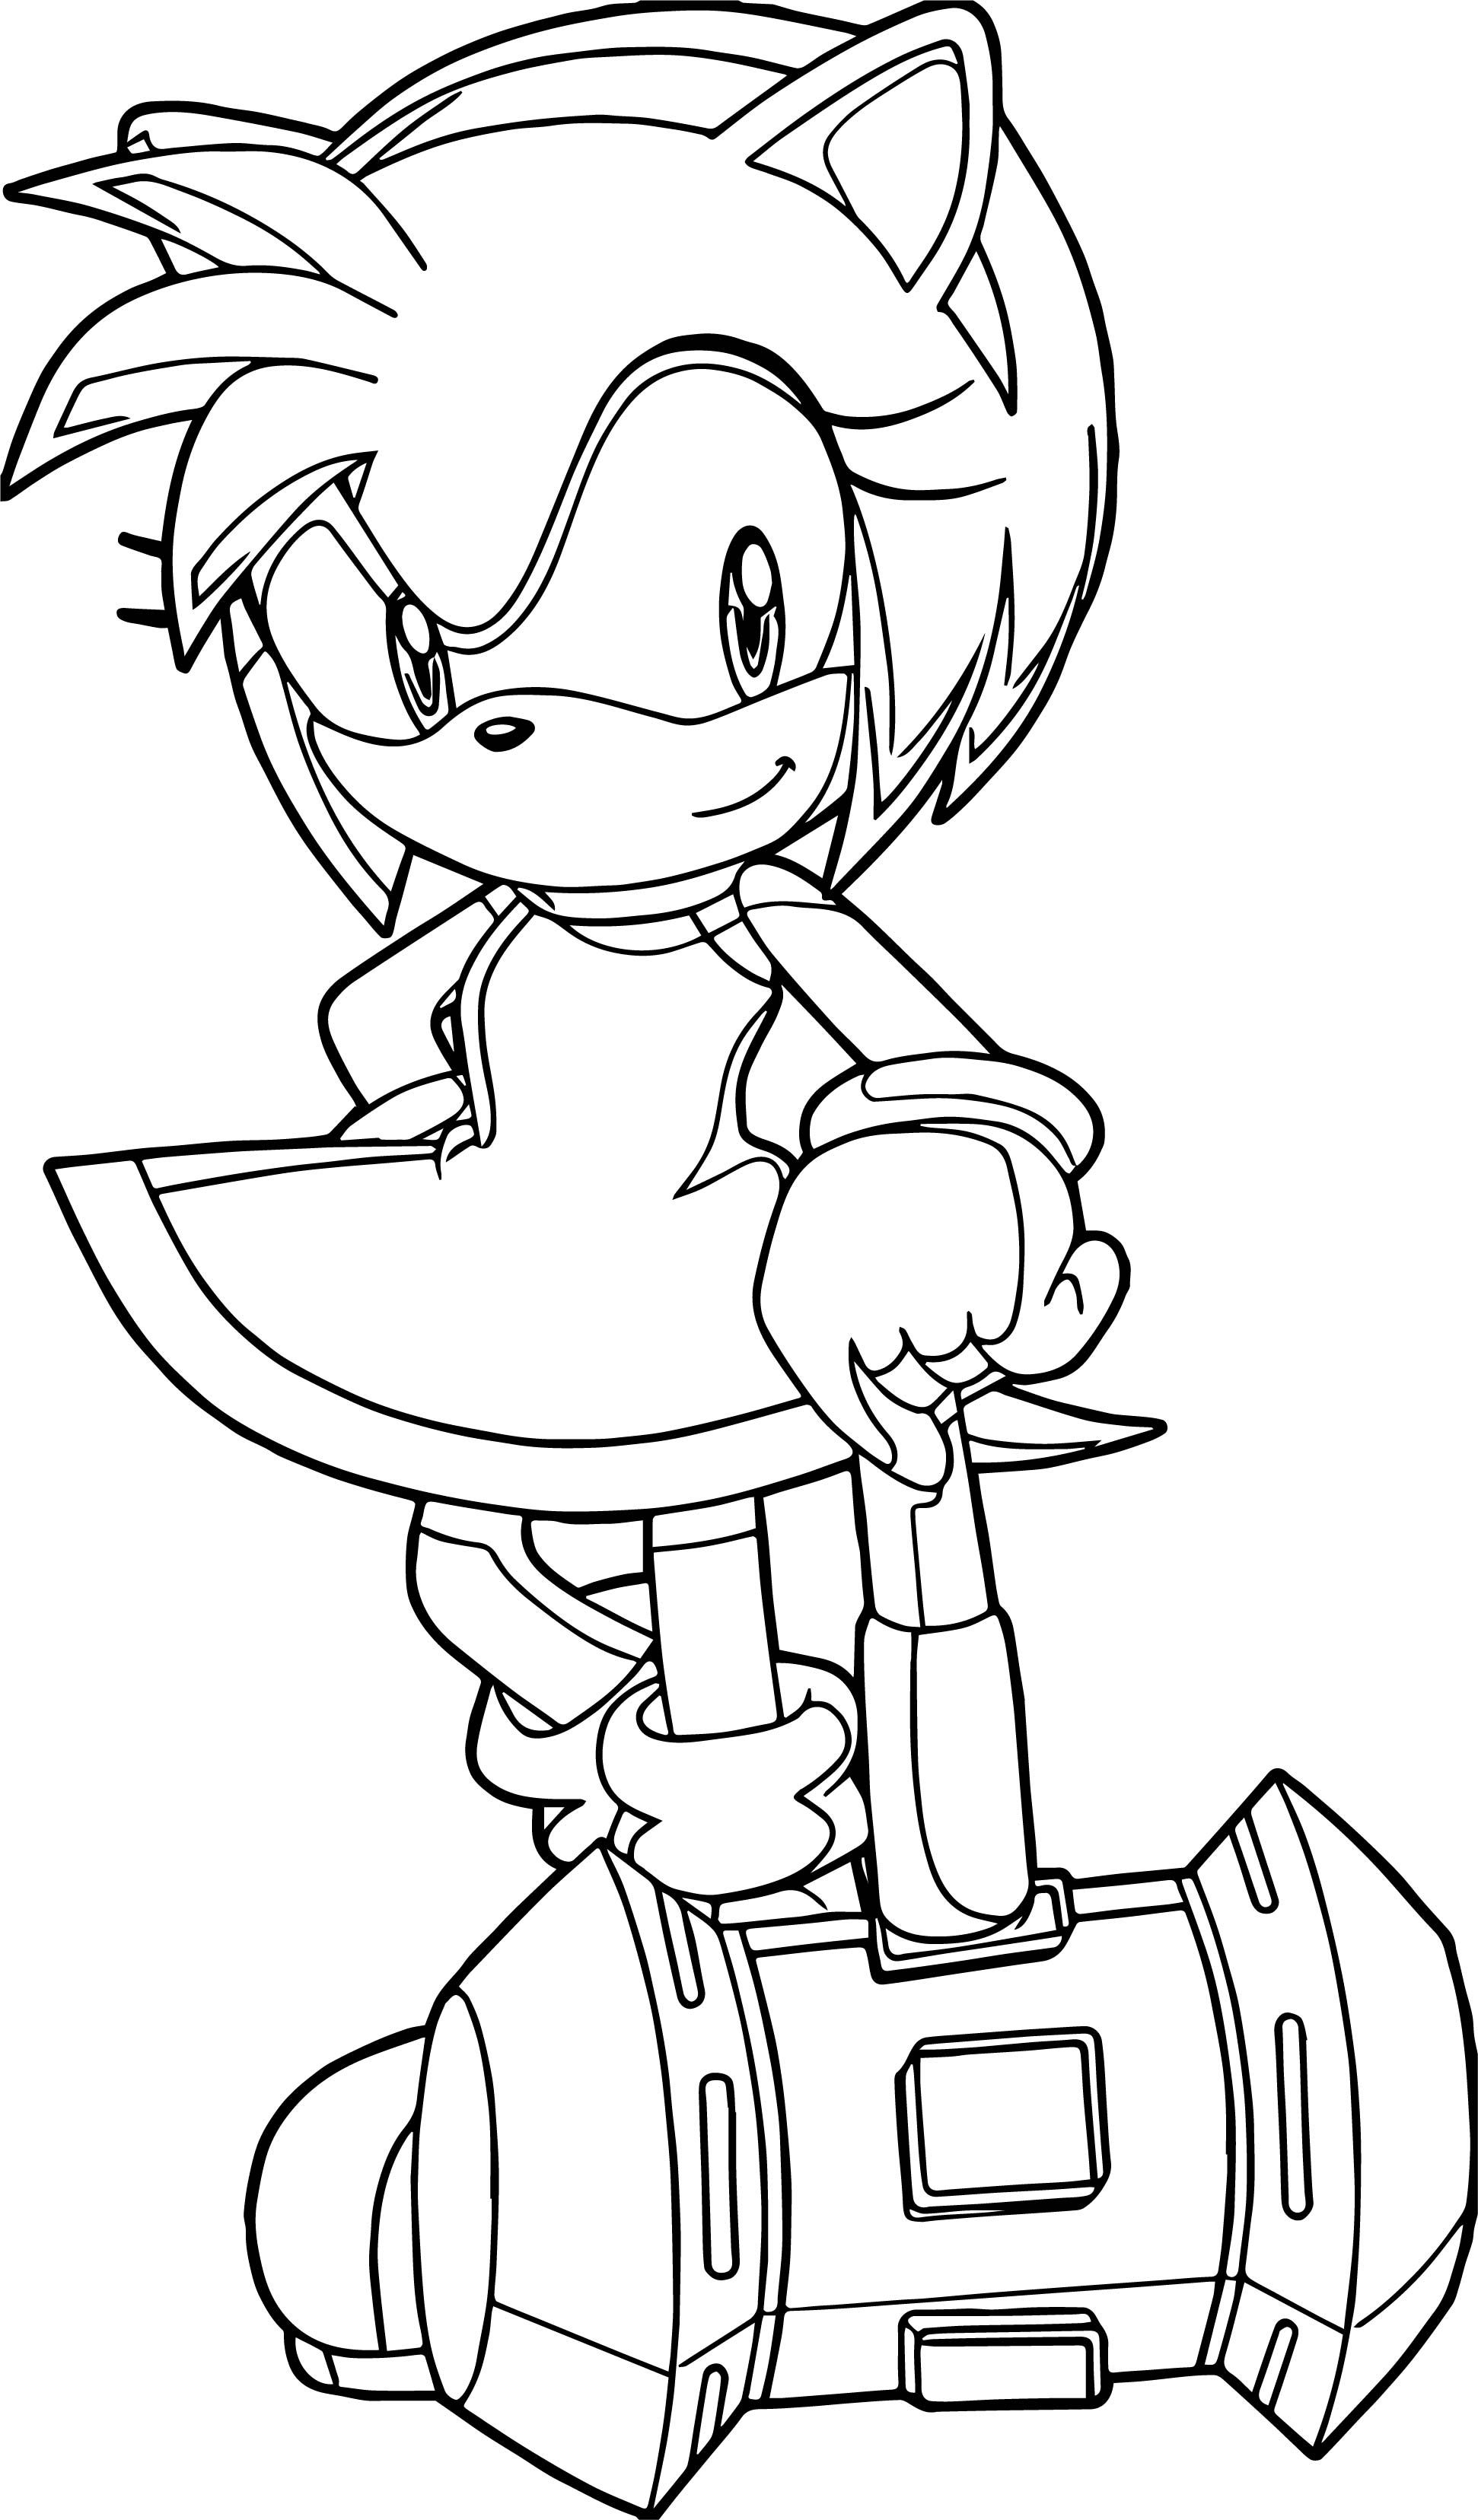 Awesome Super Amy Rose Coloring Page Rose Coloring Pages Star Wars Coloring Book Curious George Coloring Pages